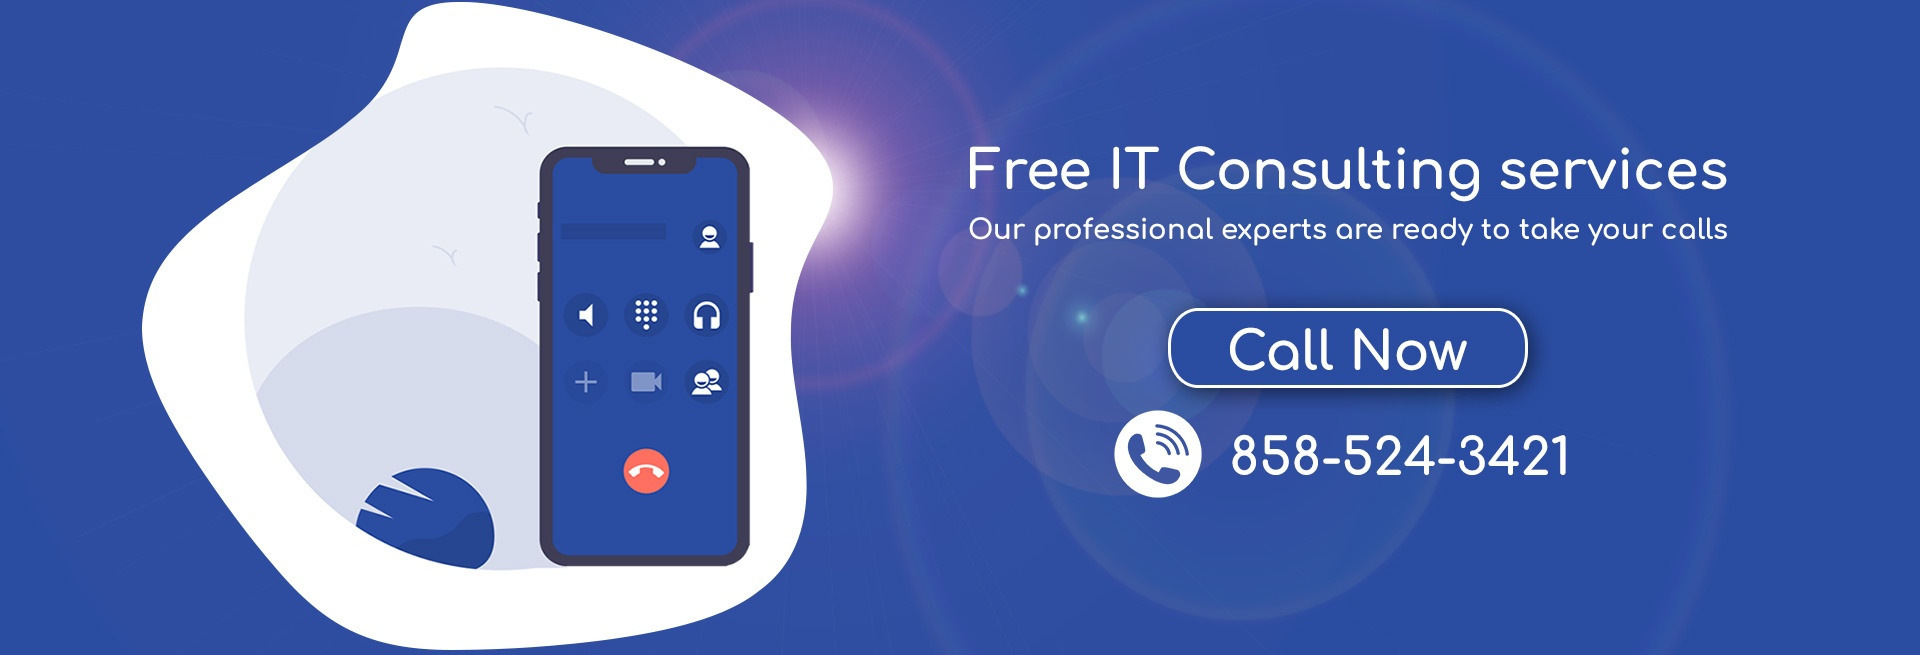 Free IT Consulting Services